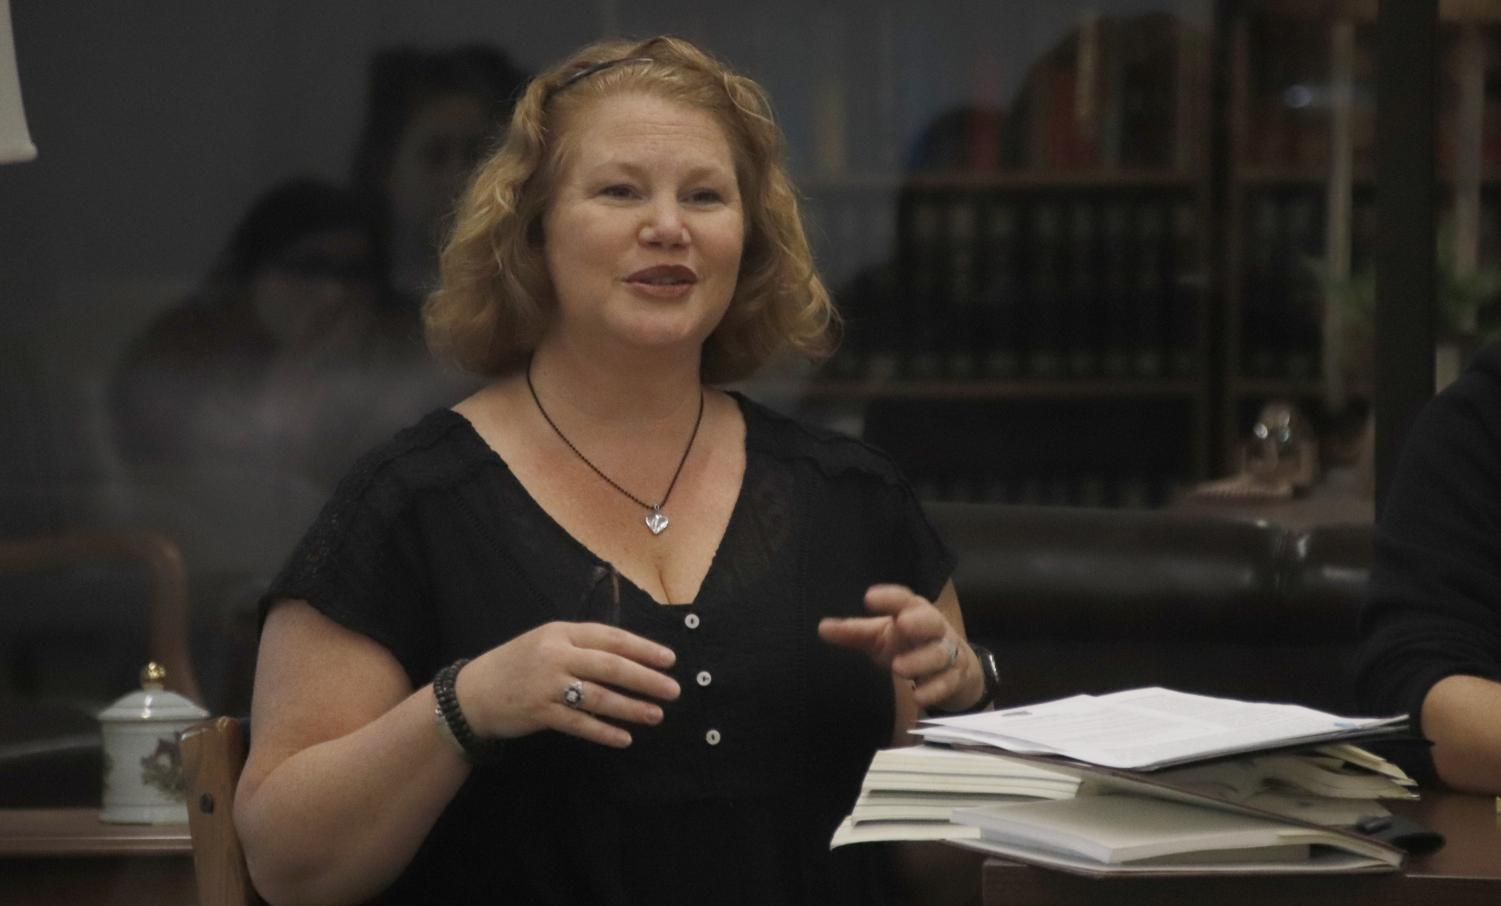 Dr. Sarah Schillage-Truxillo, instructor of English, focused on literature by women in antiquity for her part on the panel in the Sims Memorial Library. The panel included faculty from the Department of English to discuss topics related to Women's History Month.